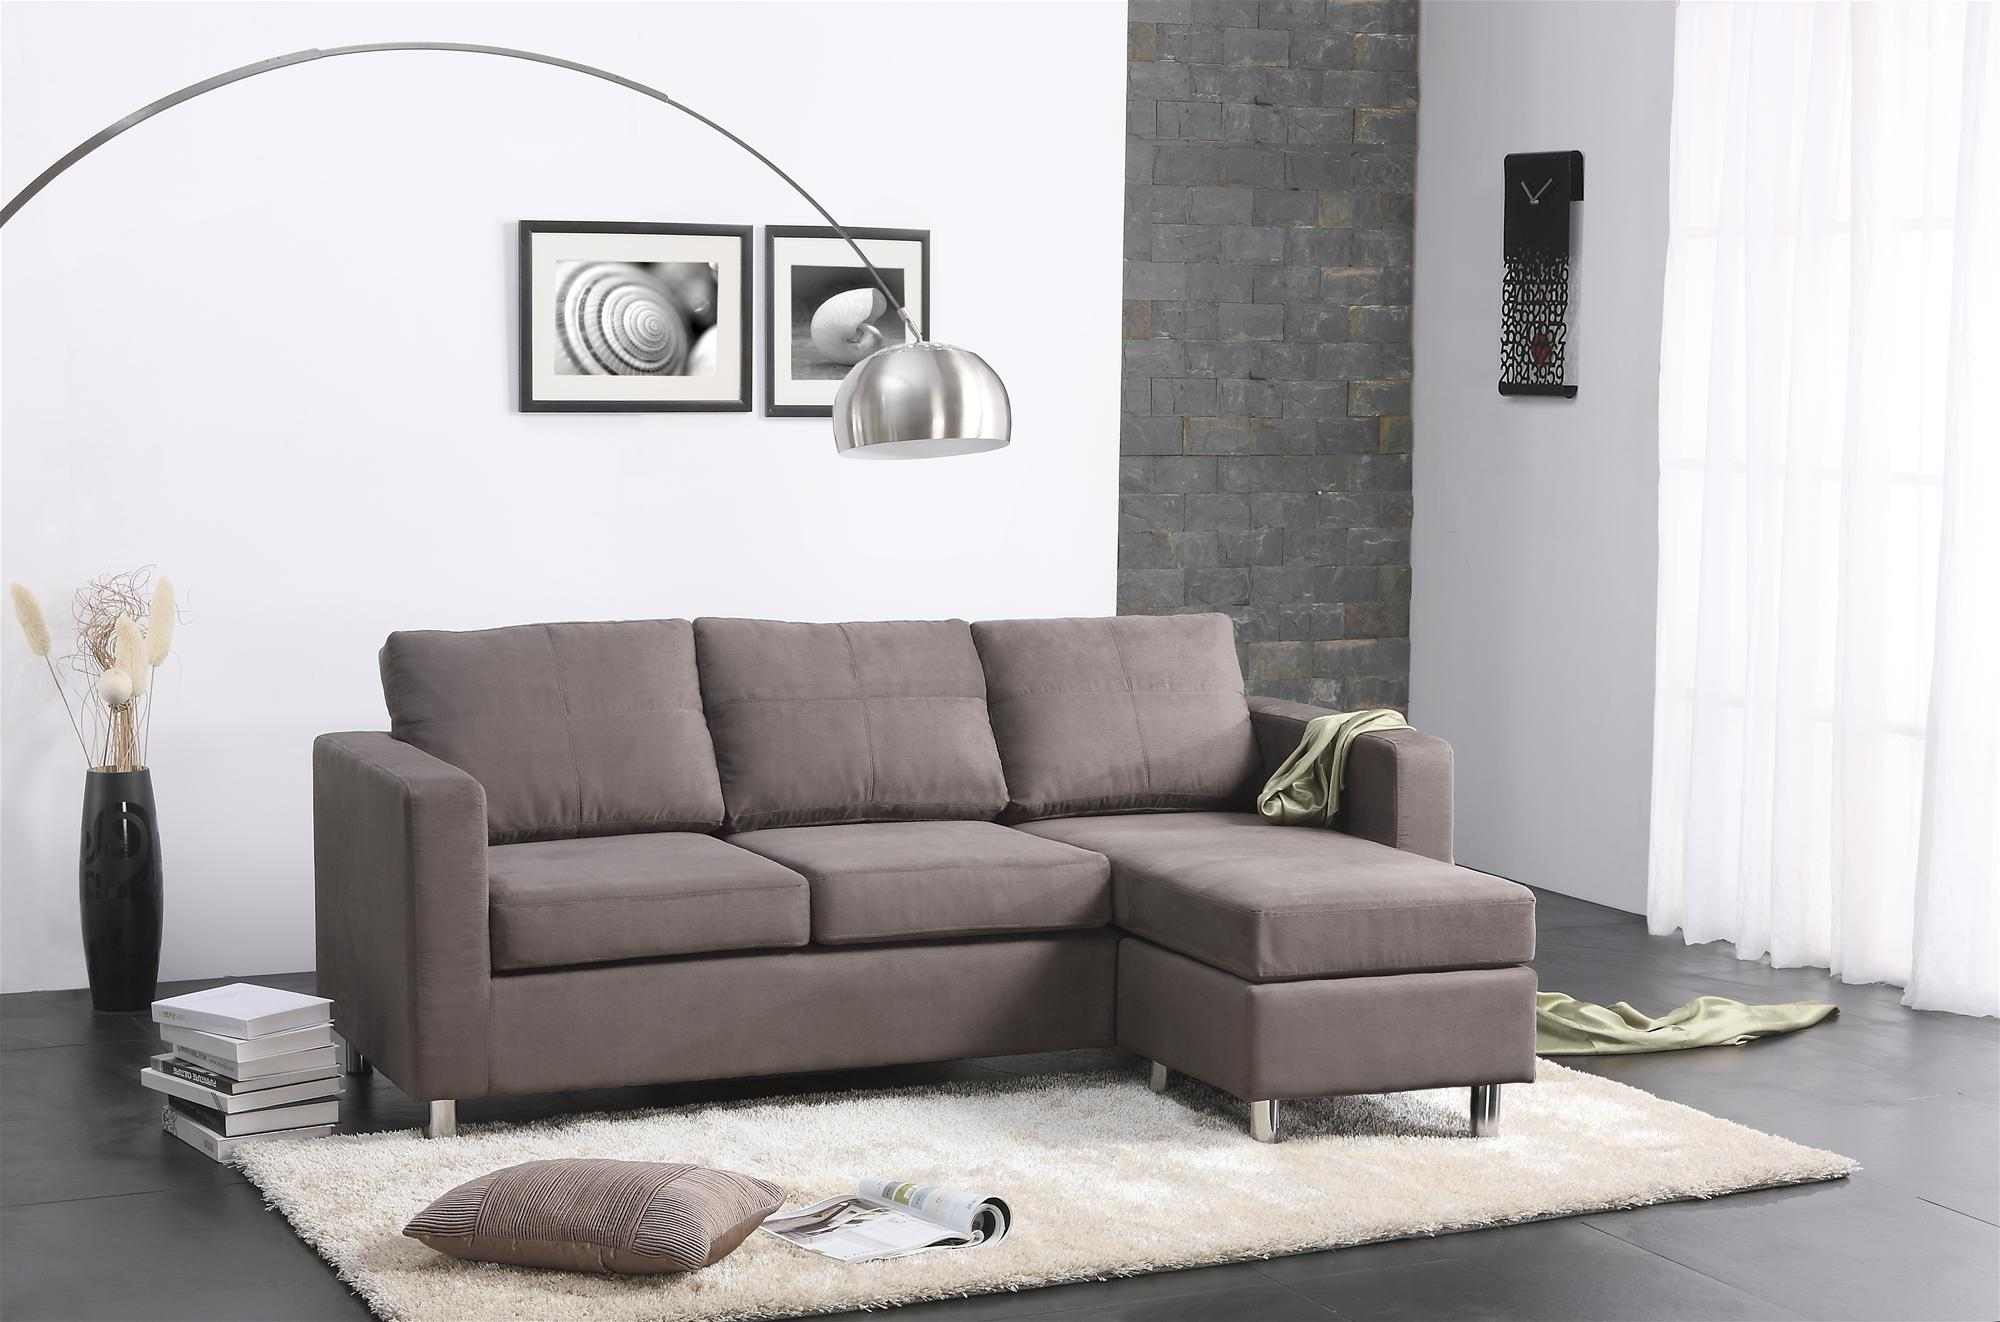 Cool Modern Lamp Designers In Living Room Decoration (Image 4 of 10)